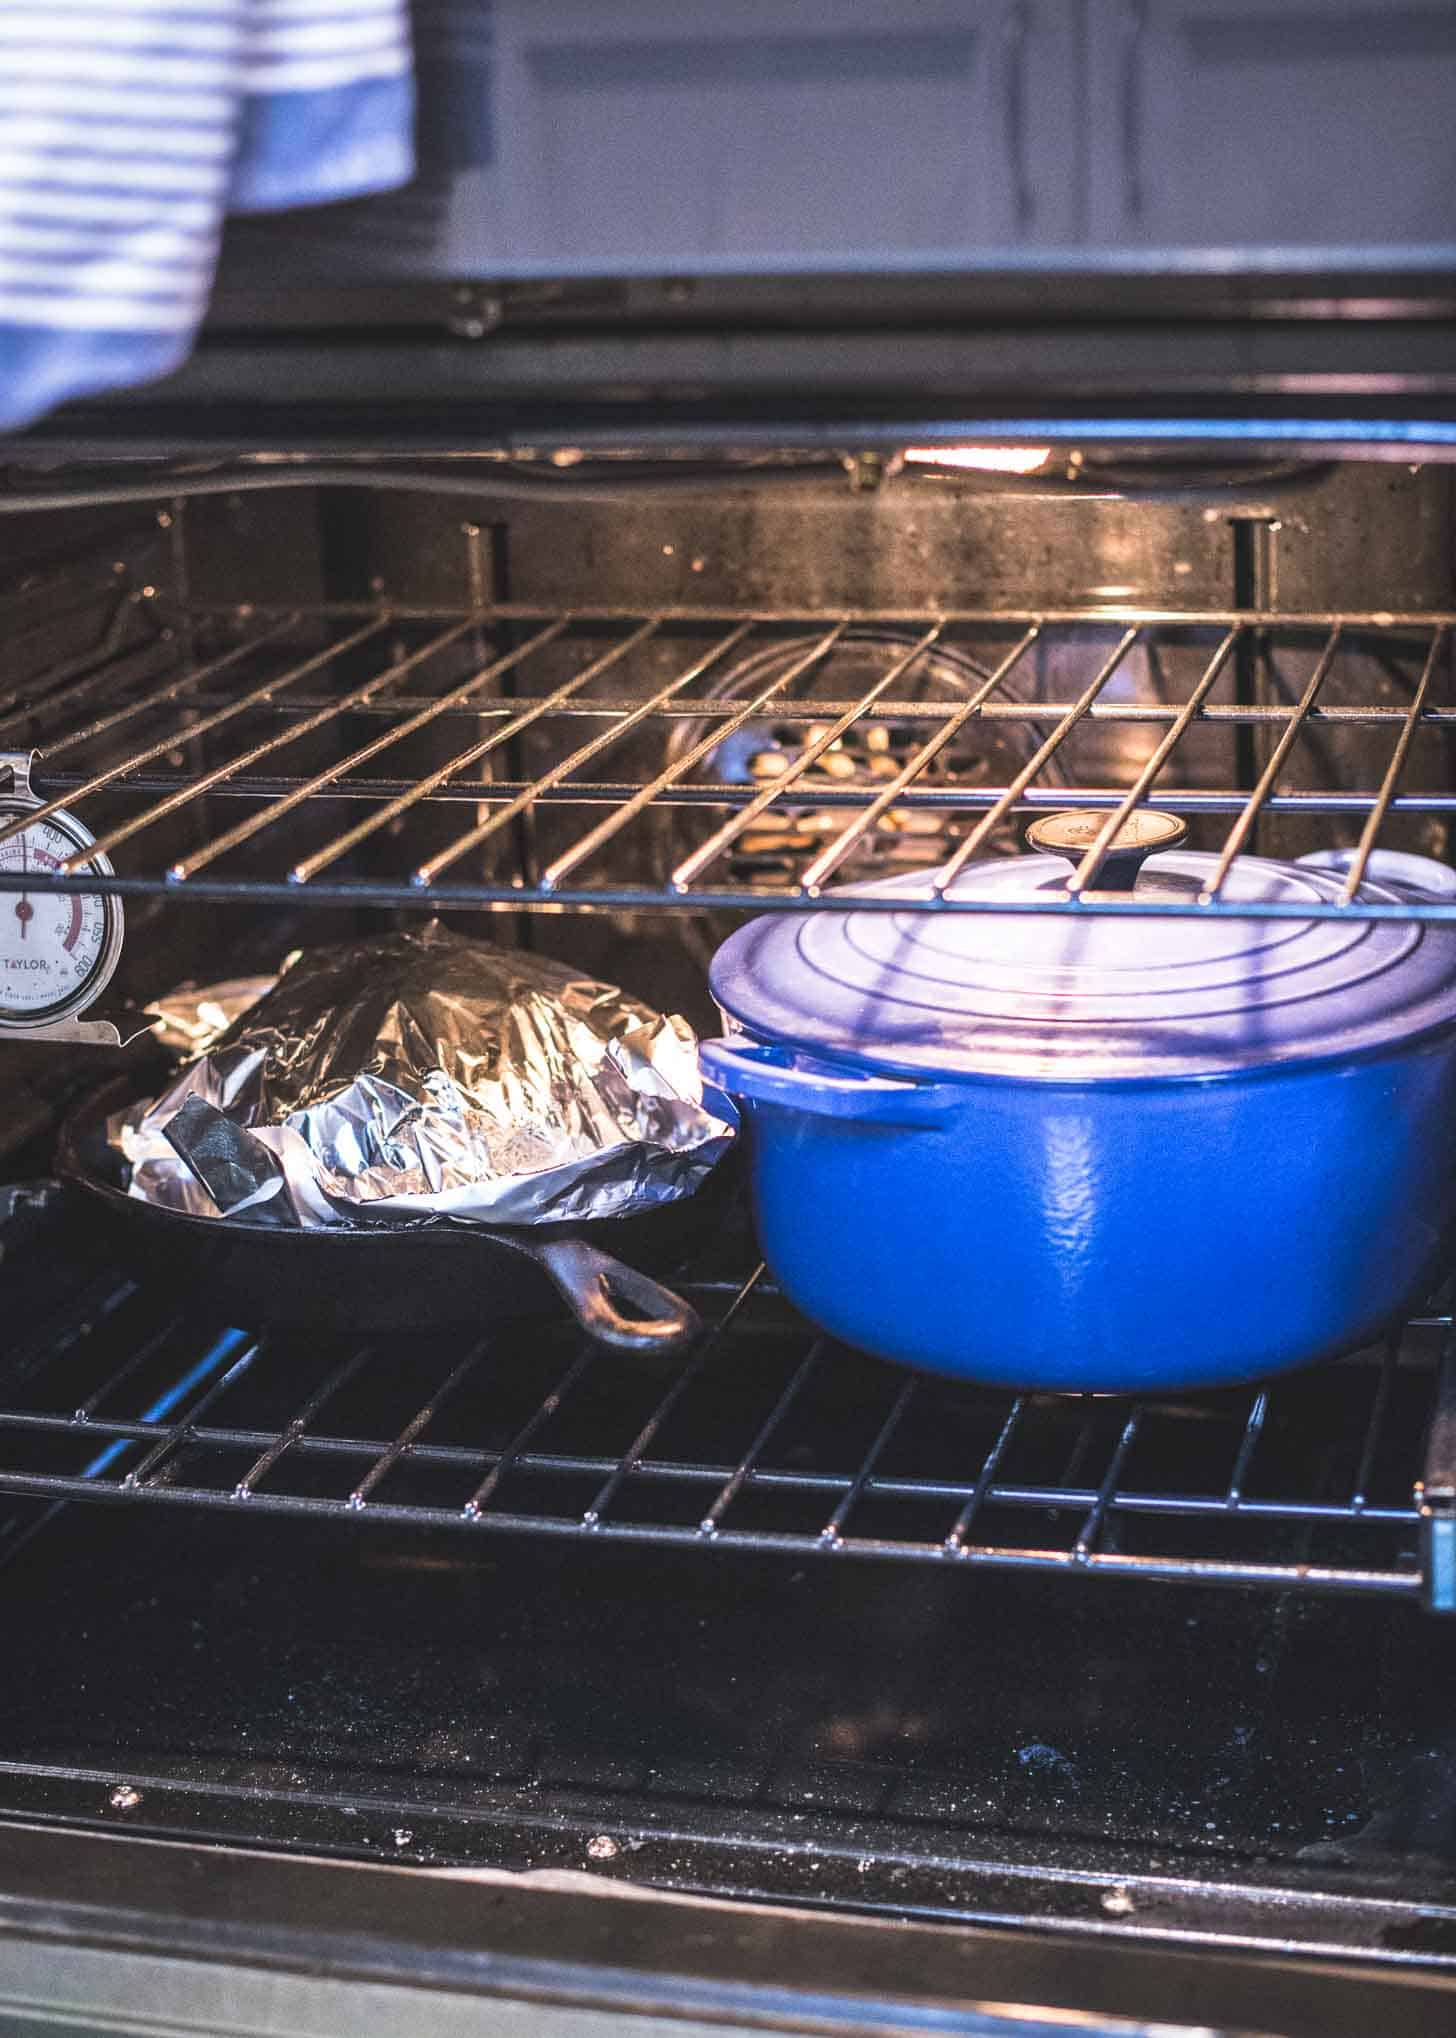 roasting a cauliflower in the oven